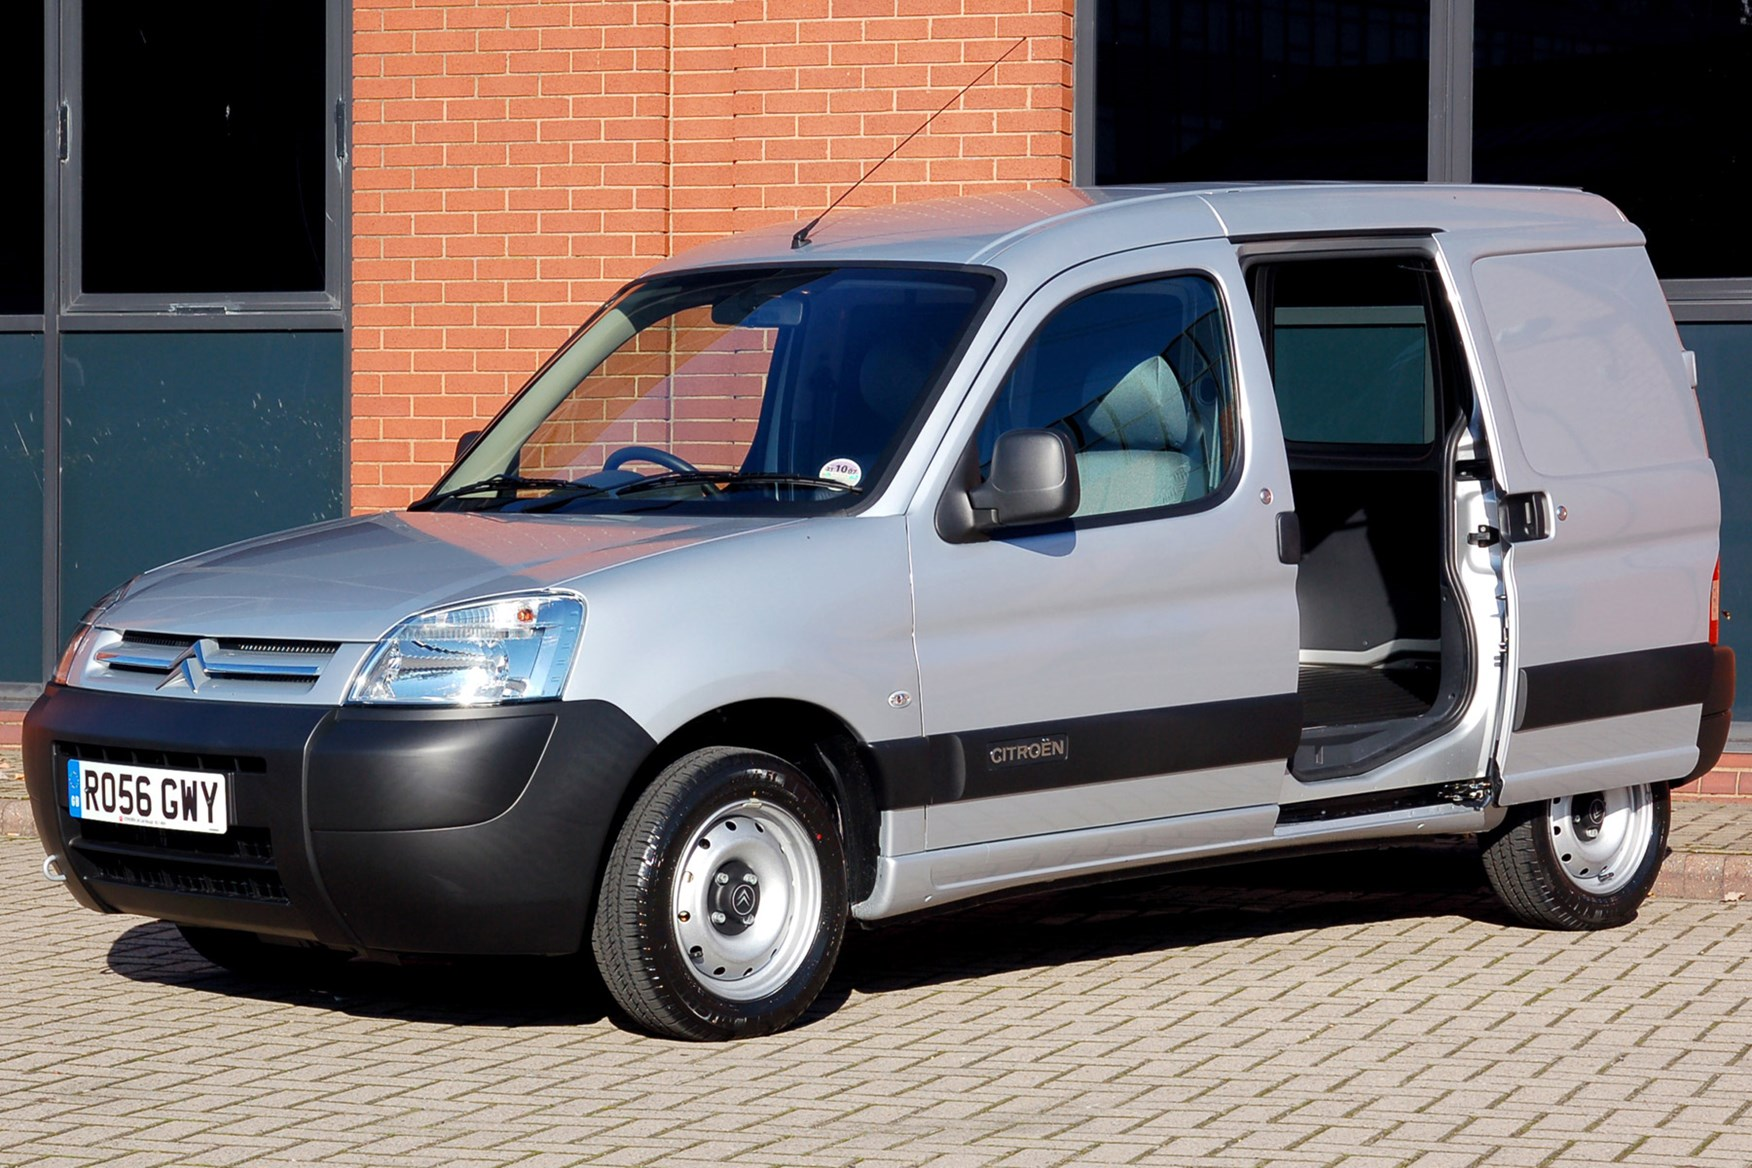 citroen berlingo van dimensions 2002 2011 capacity payload volume towing parkers. Black Bedroom Furniture Sets. Home Design Ideas